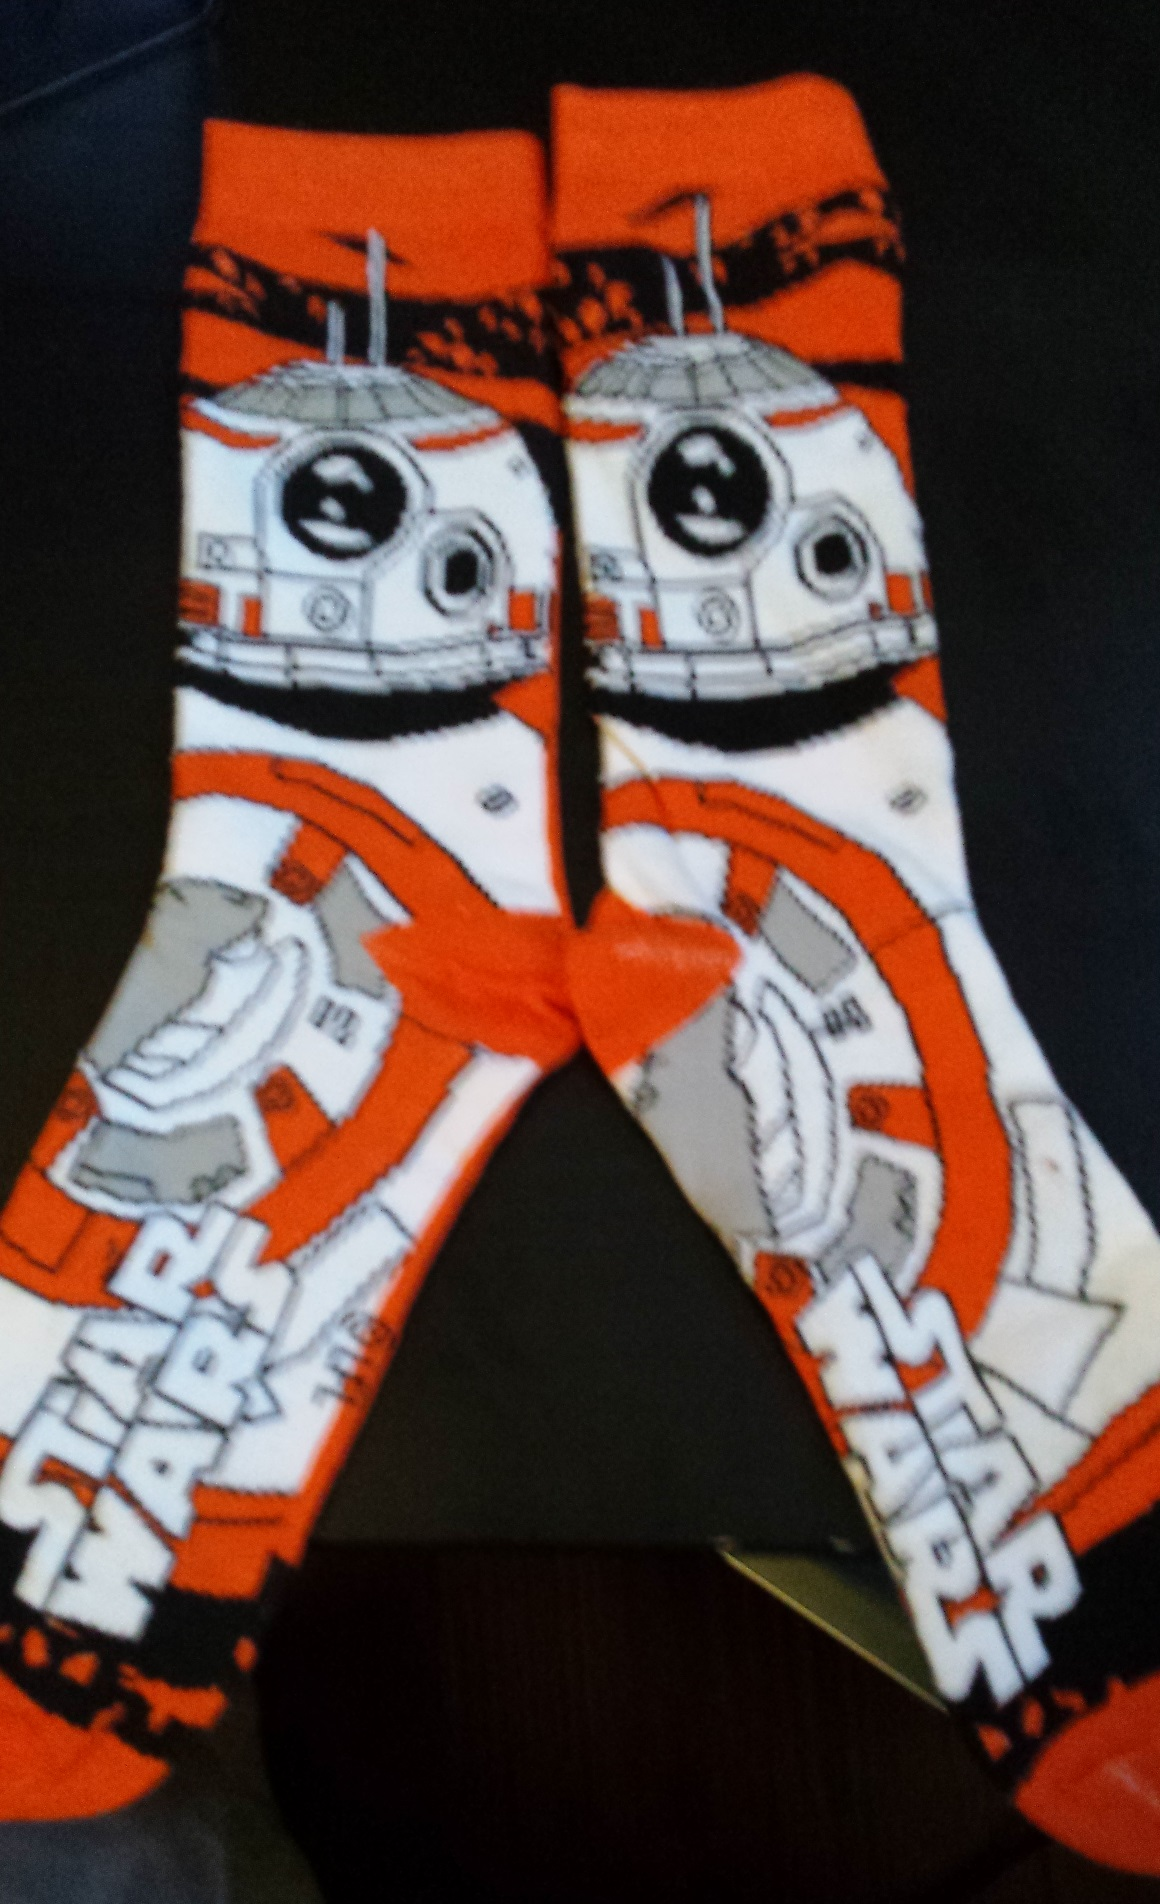 Bb-8 socks, star wars, loot crate, loot crate review, december loot crate, discovery loot crate